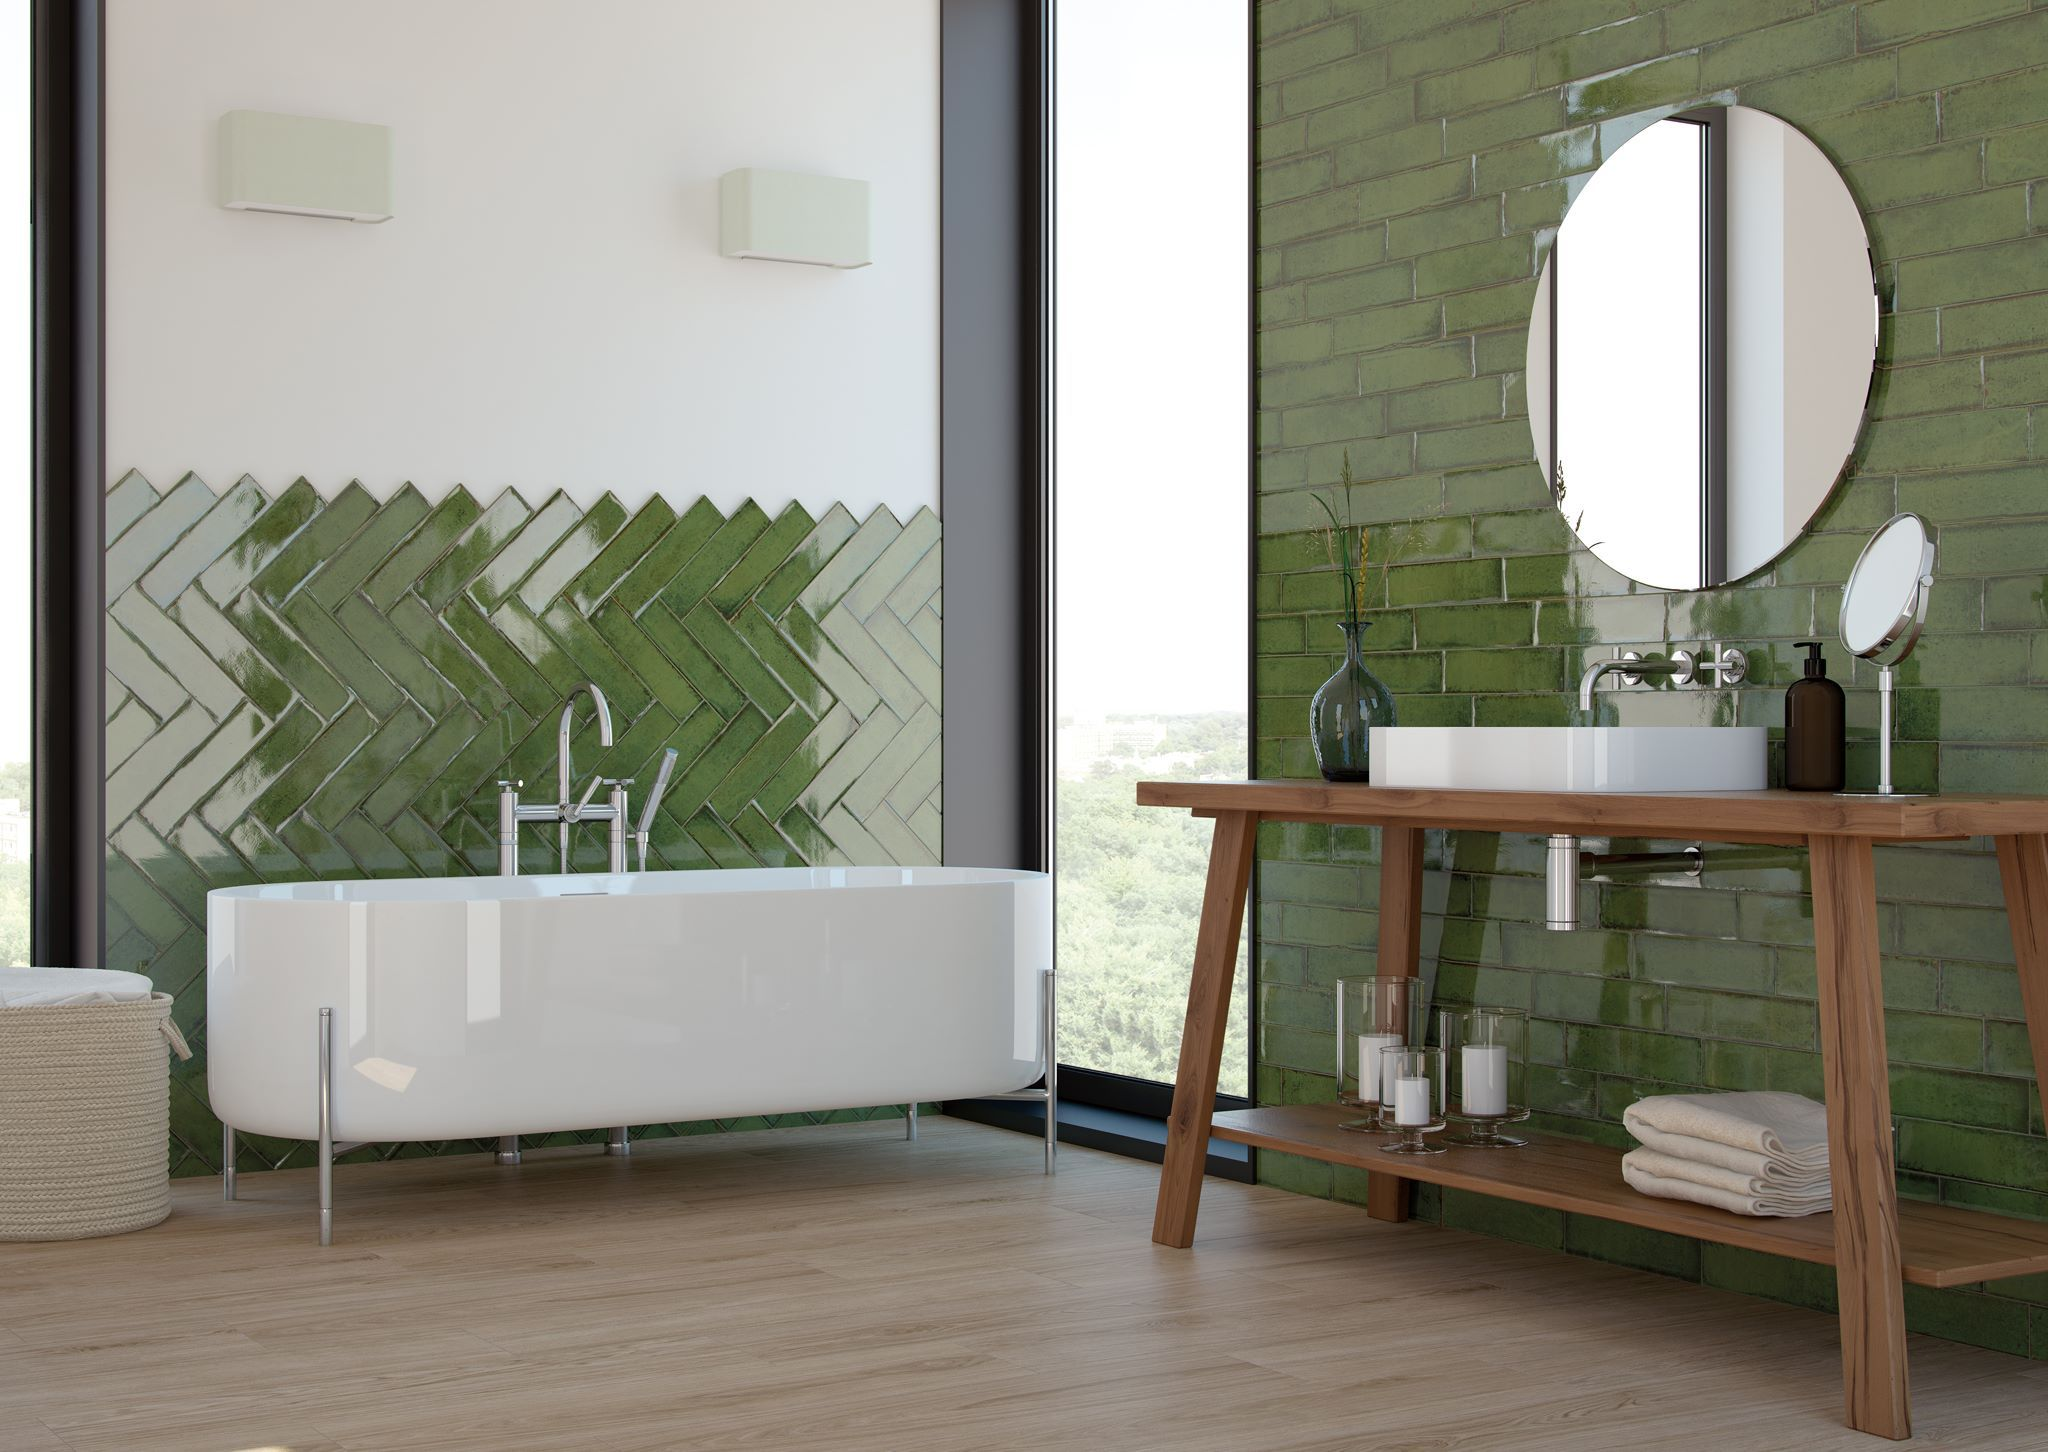 Vintage green bathroom with alchimia olive wall tiles from cifre vintage green bathroom with alchimia olive wall tiles from cifre dailygadgetfo Images